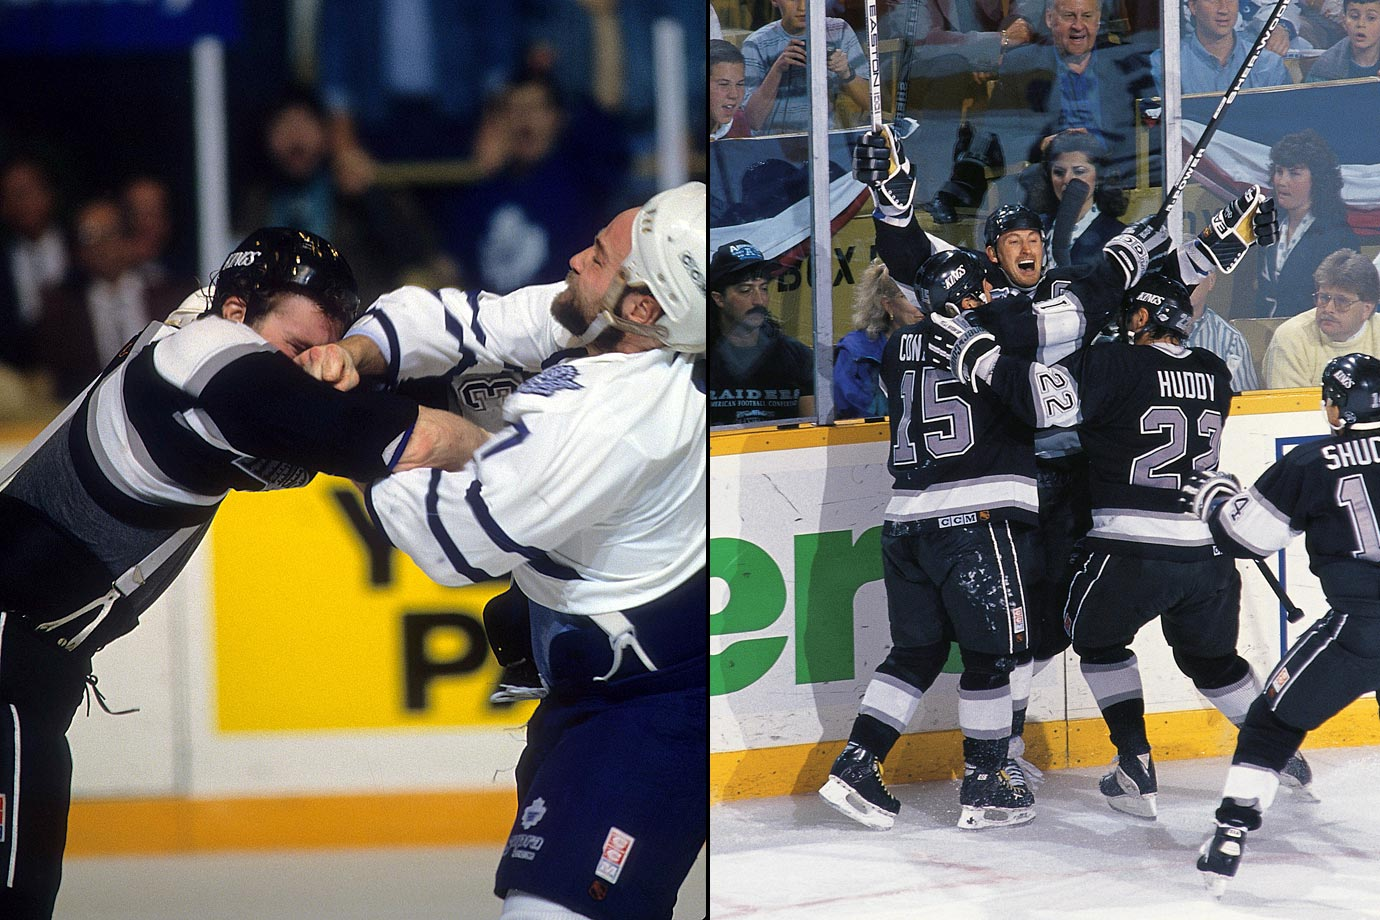 Peak Wendel Clark vs. the Great One at his best. The seven games were Old Testament violent, the hockey intense and emotional. Toronto's star forward was a wrecking ball, winning an in an epic tilt with enforcer Marty McSorley in Game 1, then scoring a memorable hat trick in Game 6 that could have clinched the series. Instead a missed high sticking call on Gretzky gave the Kings life and kept him in the game long enough to score the OT winner, setting up Game 7 in Toronto. Gretzky again rose to the occasion, netting a hatty of his own in L.A.'s 5-4 win. He later called his performance the best of his NHL career.